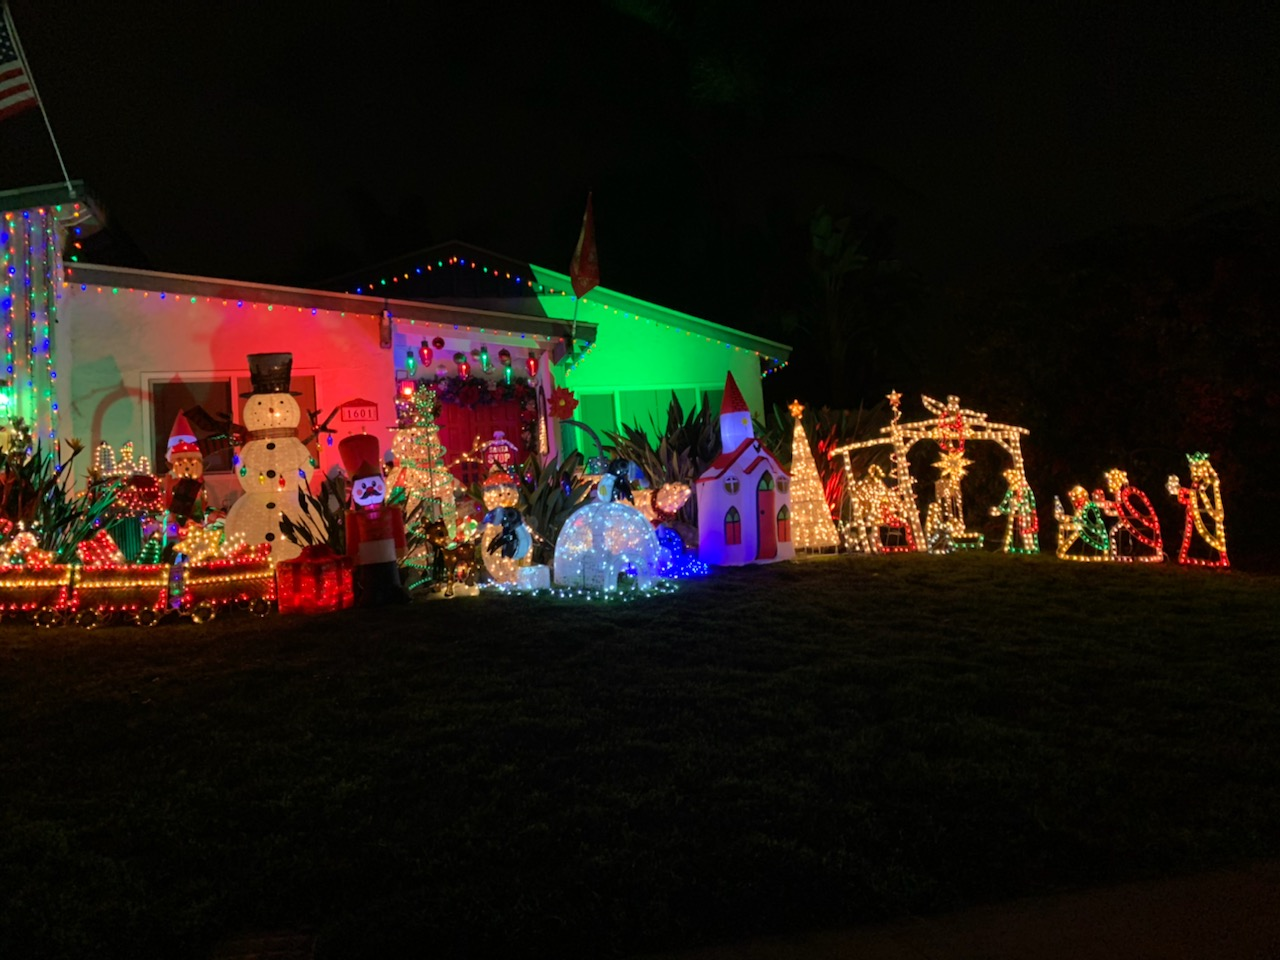 Holiday festivities abound around San Marcos as decorations light up the city.